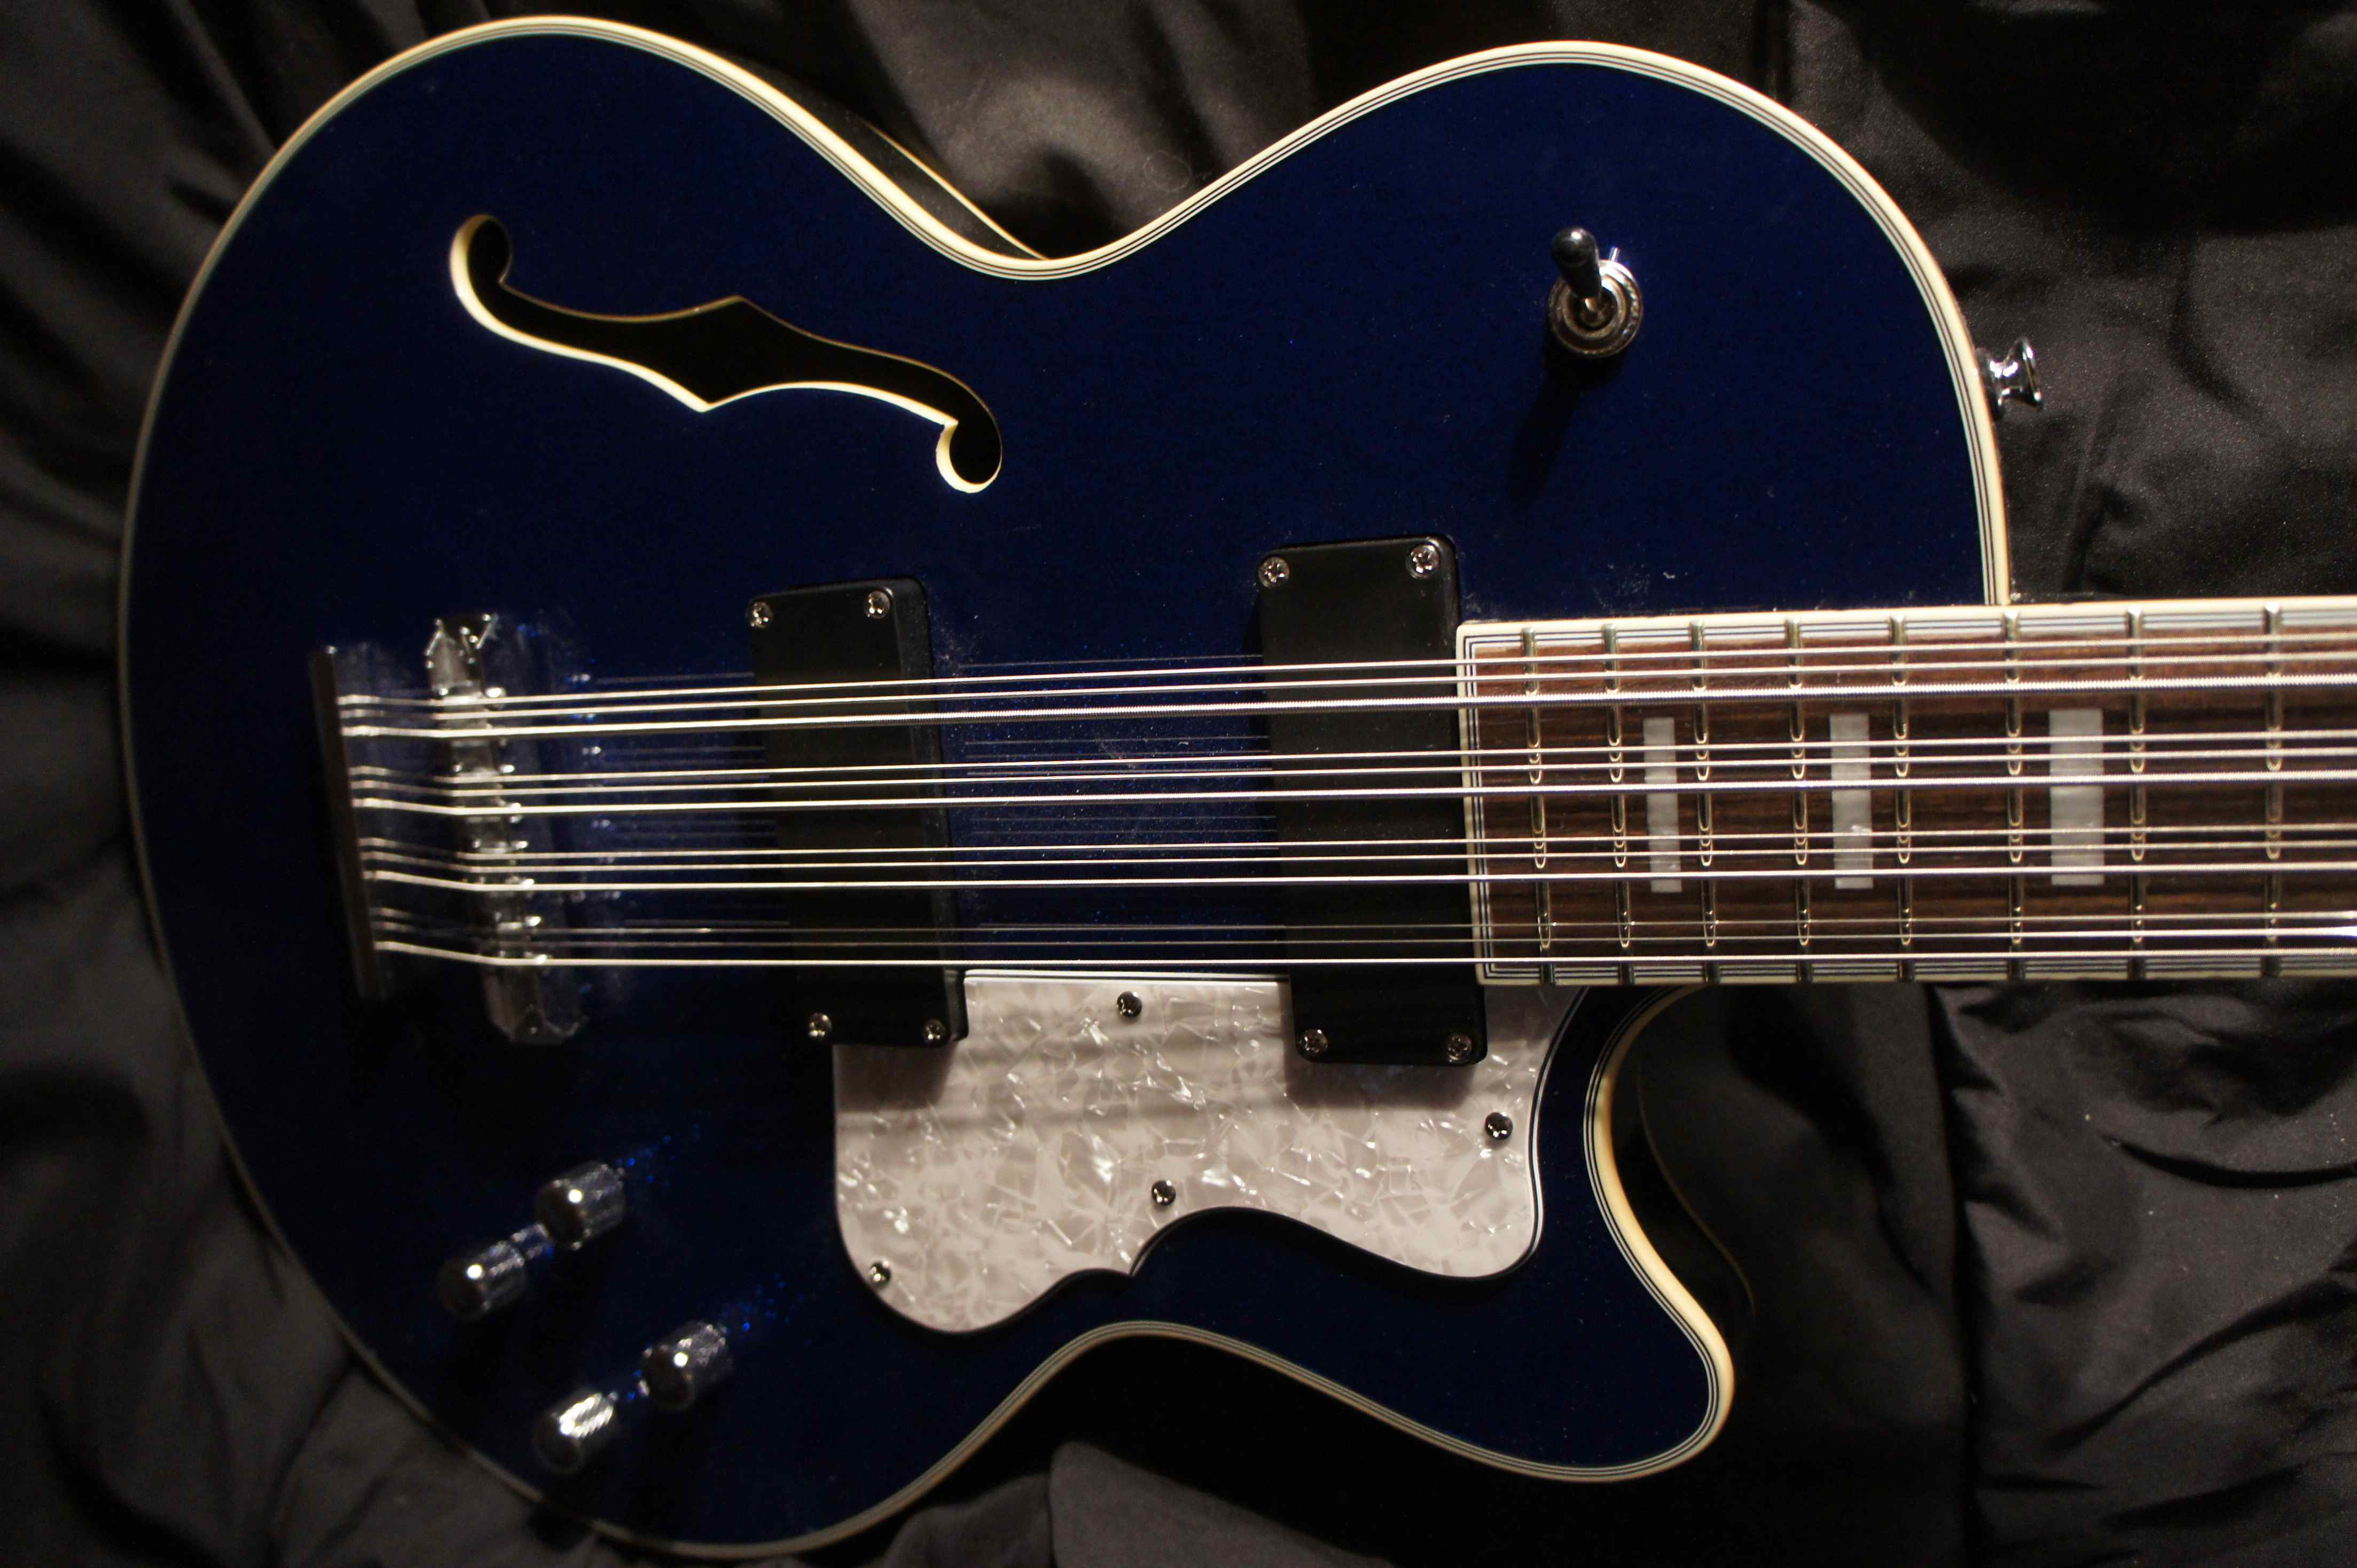 waterstone 12 string bass 2005 tom petersson cheap trick tune your sound. Black Bedroom Furniture Sets. Home Design Ideas